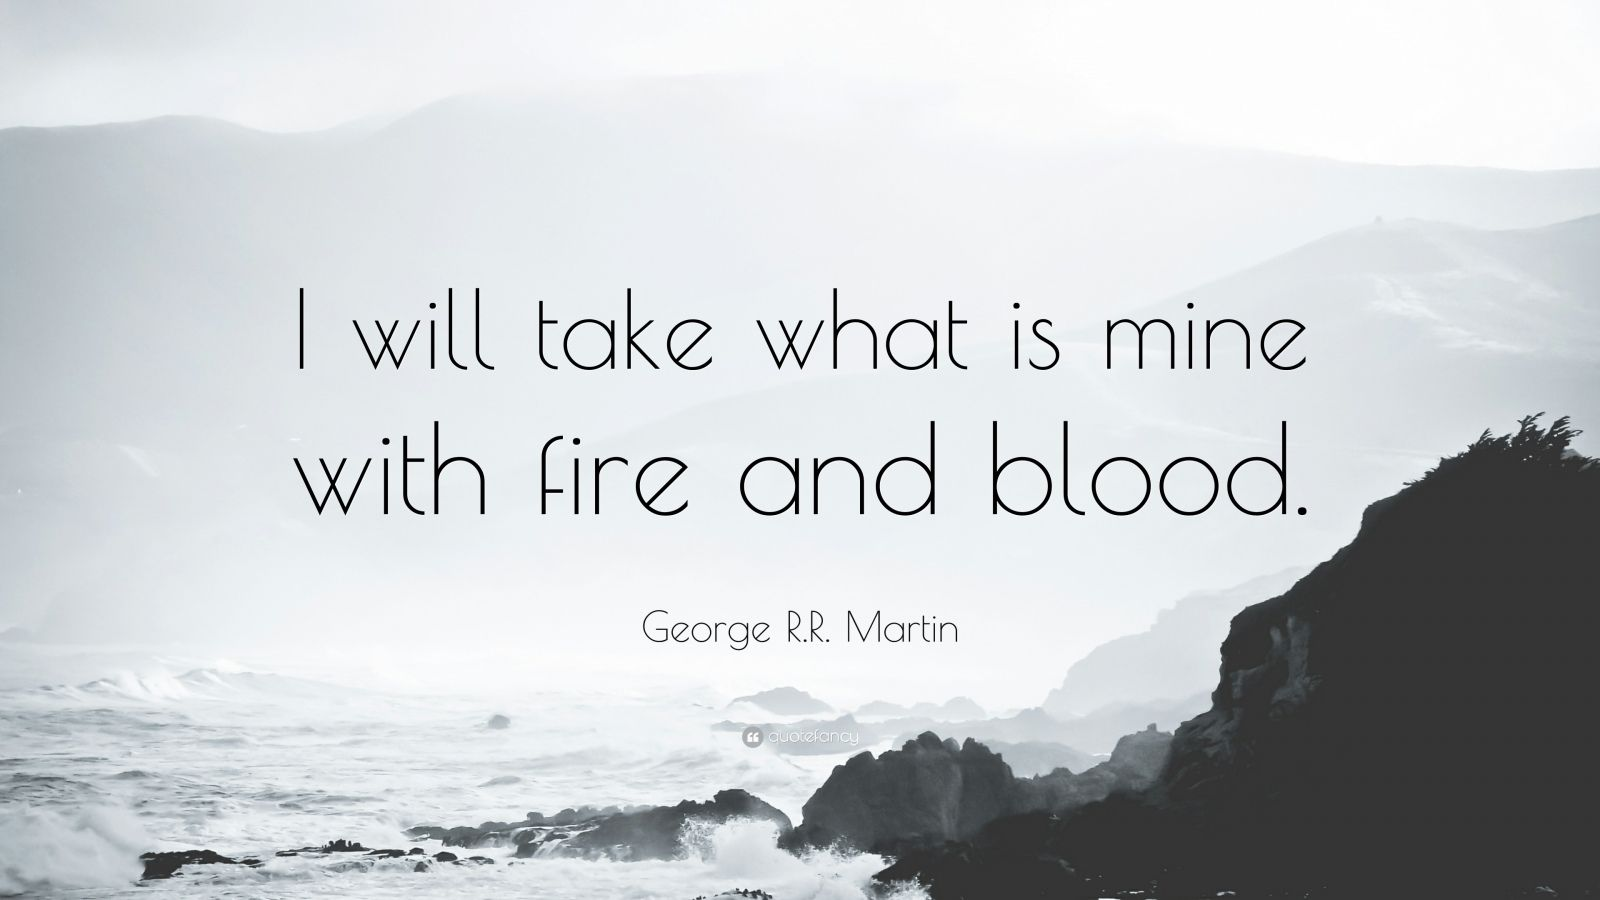 "Quotes About Fire: ""I will take what is mine with fire and blood."" — George R.R. Martin"